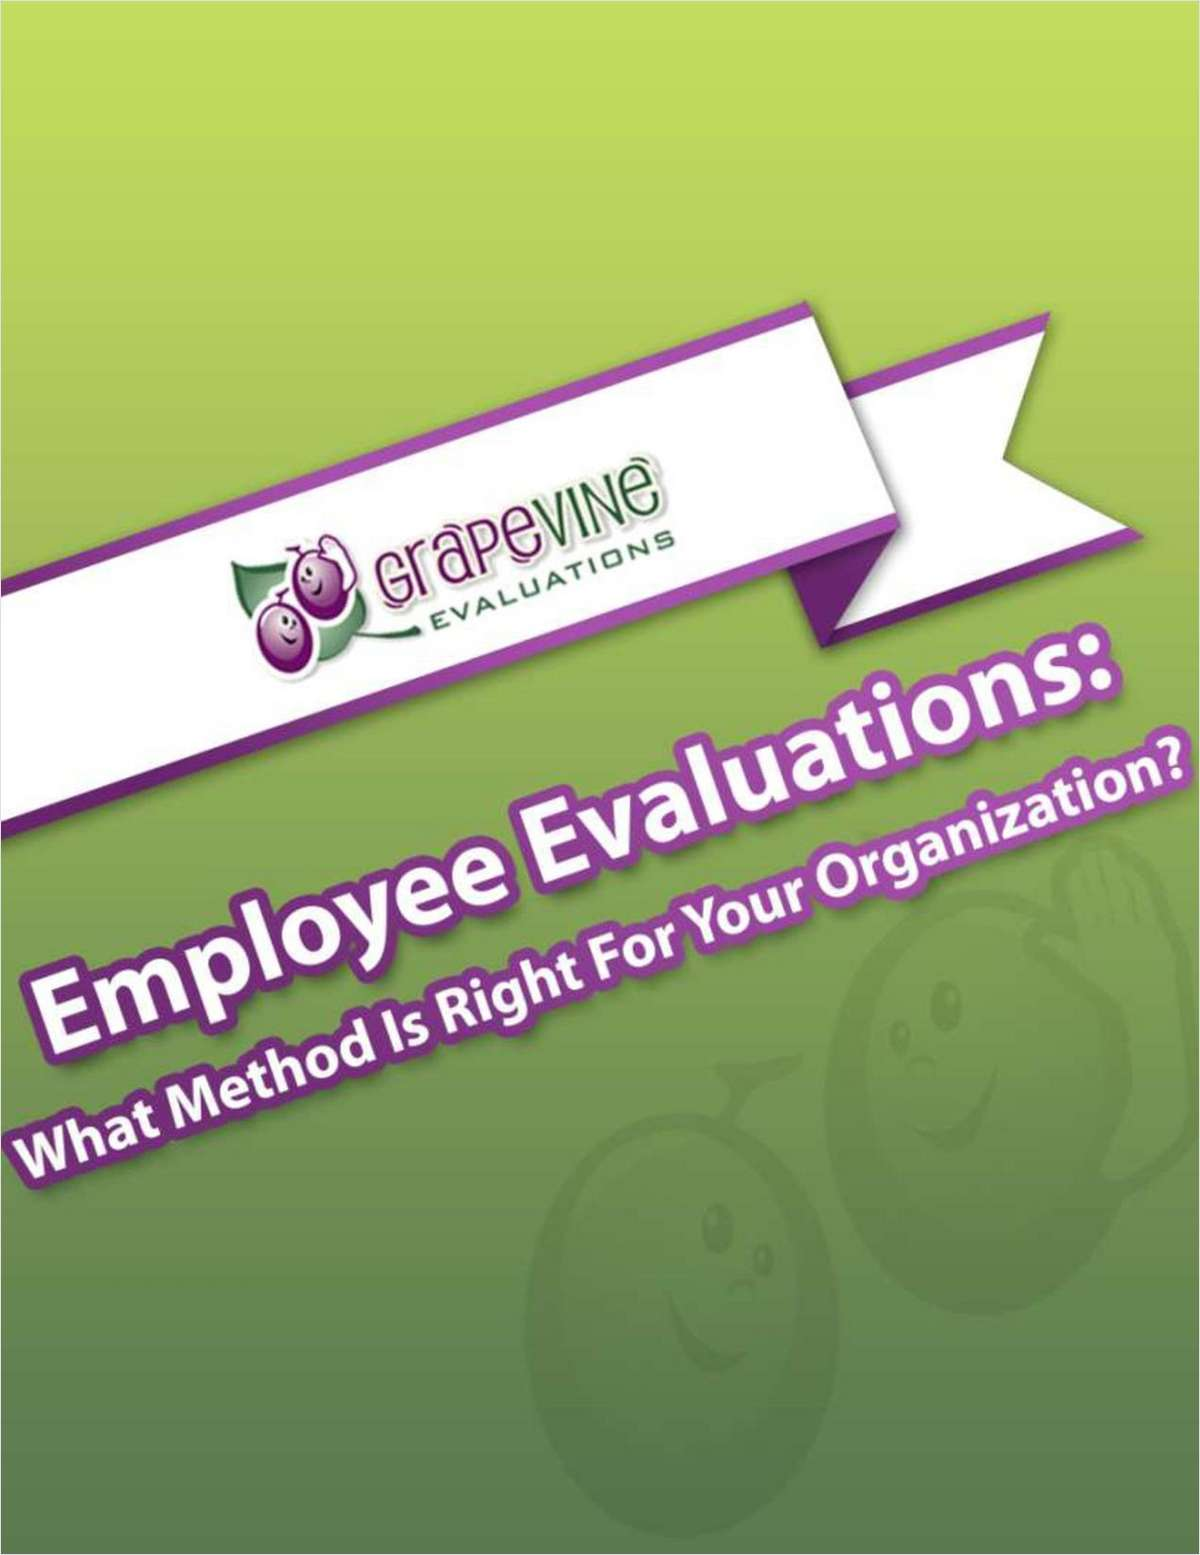 Employee Evaluations: What Method Is Right For Your Organization?